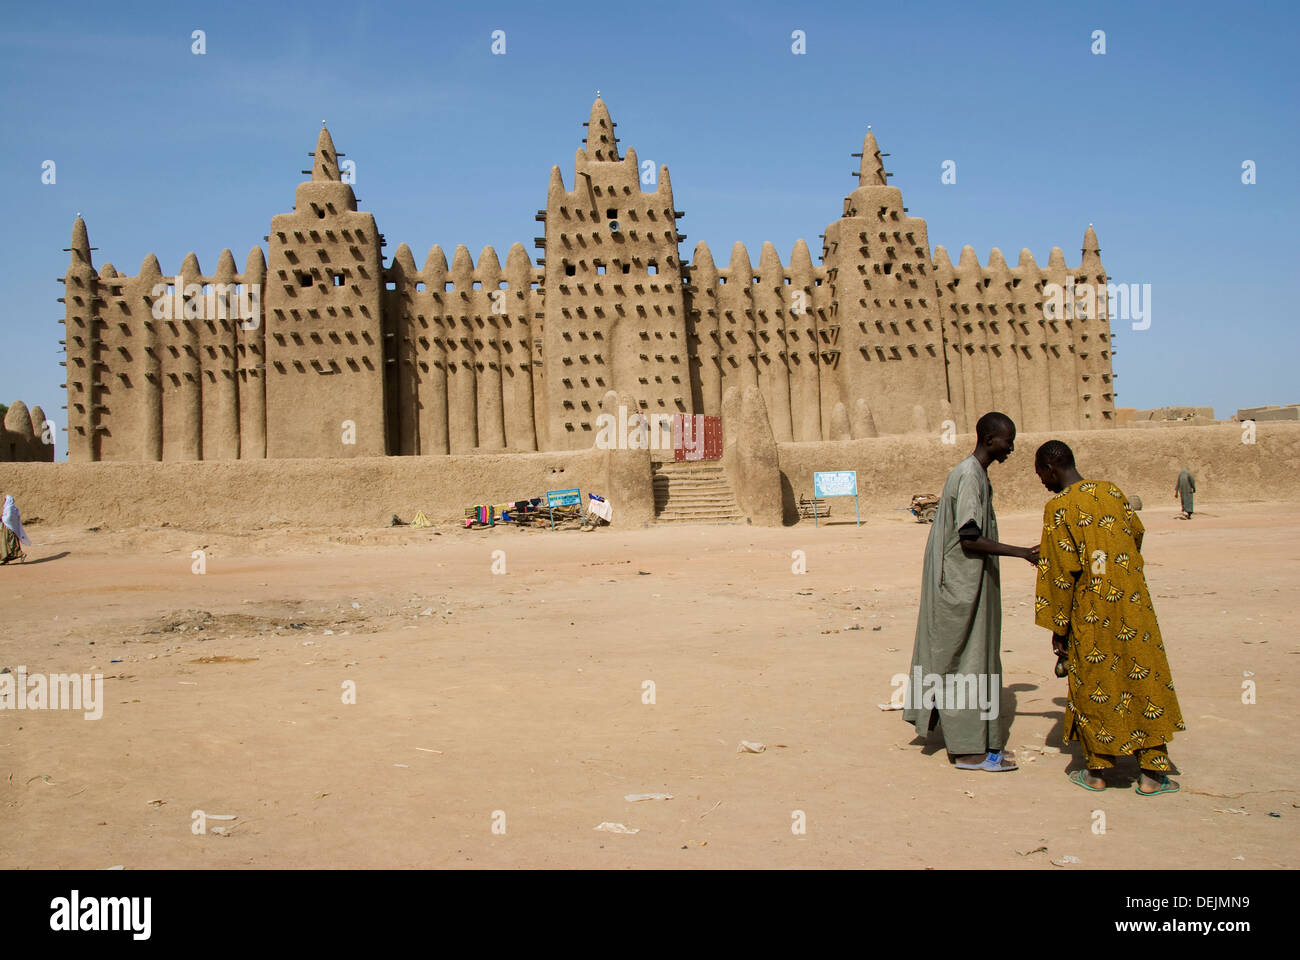 Great Mosque of Djenné. Djenné. Mopti region. Niger Inland Delta. Mali. West Africa. Stock Photo